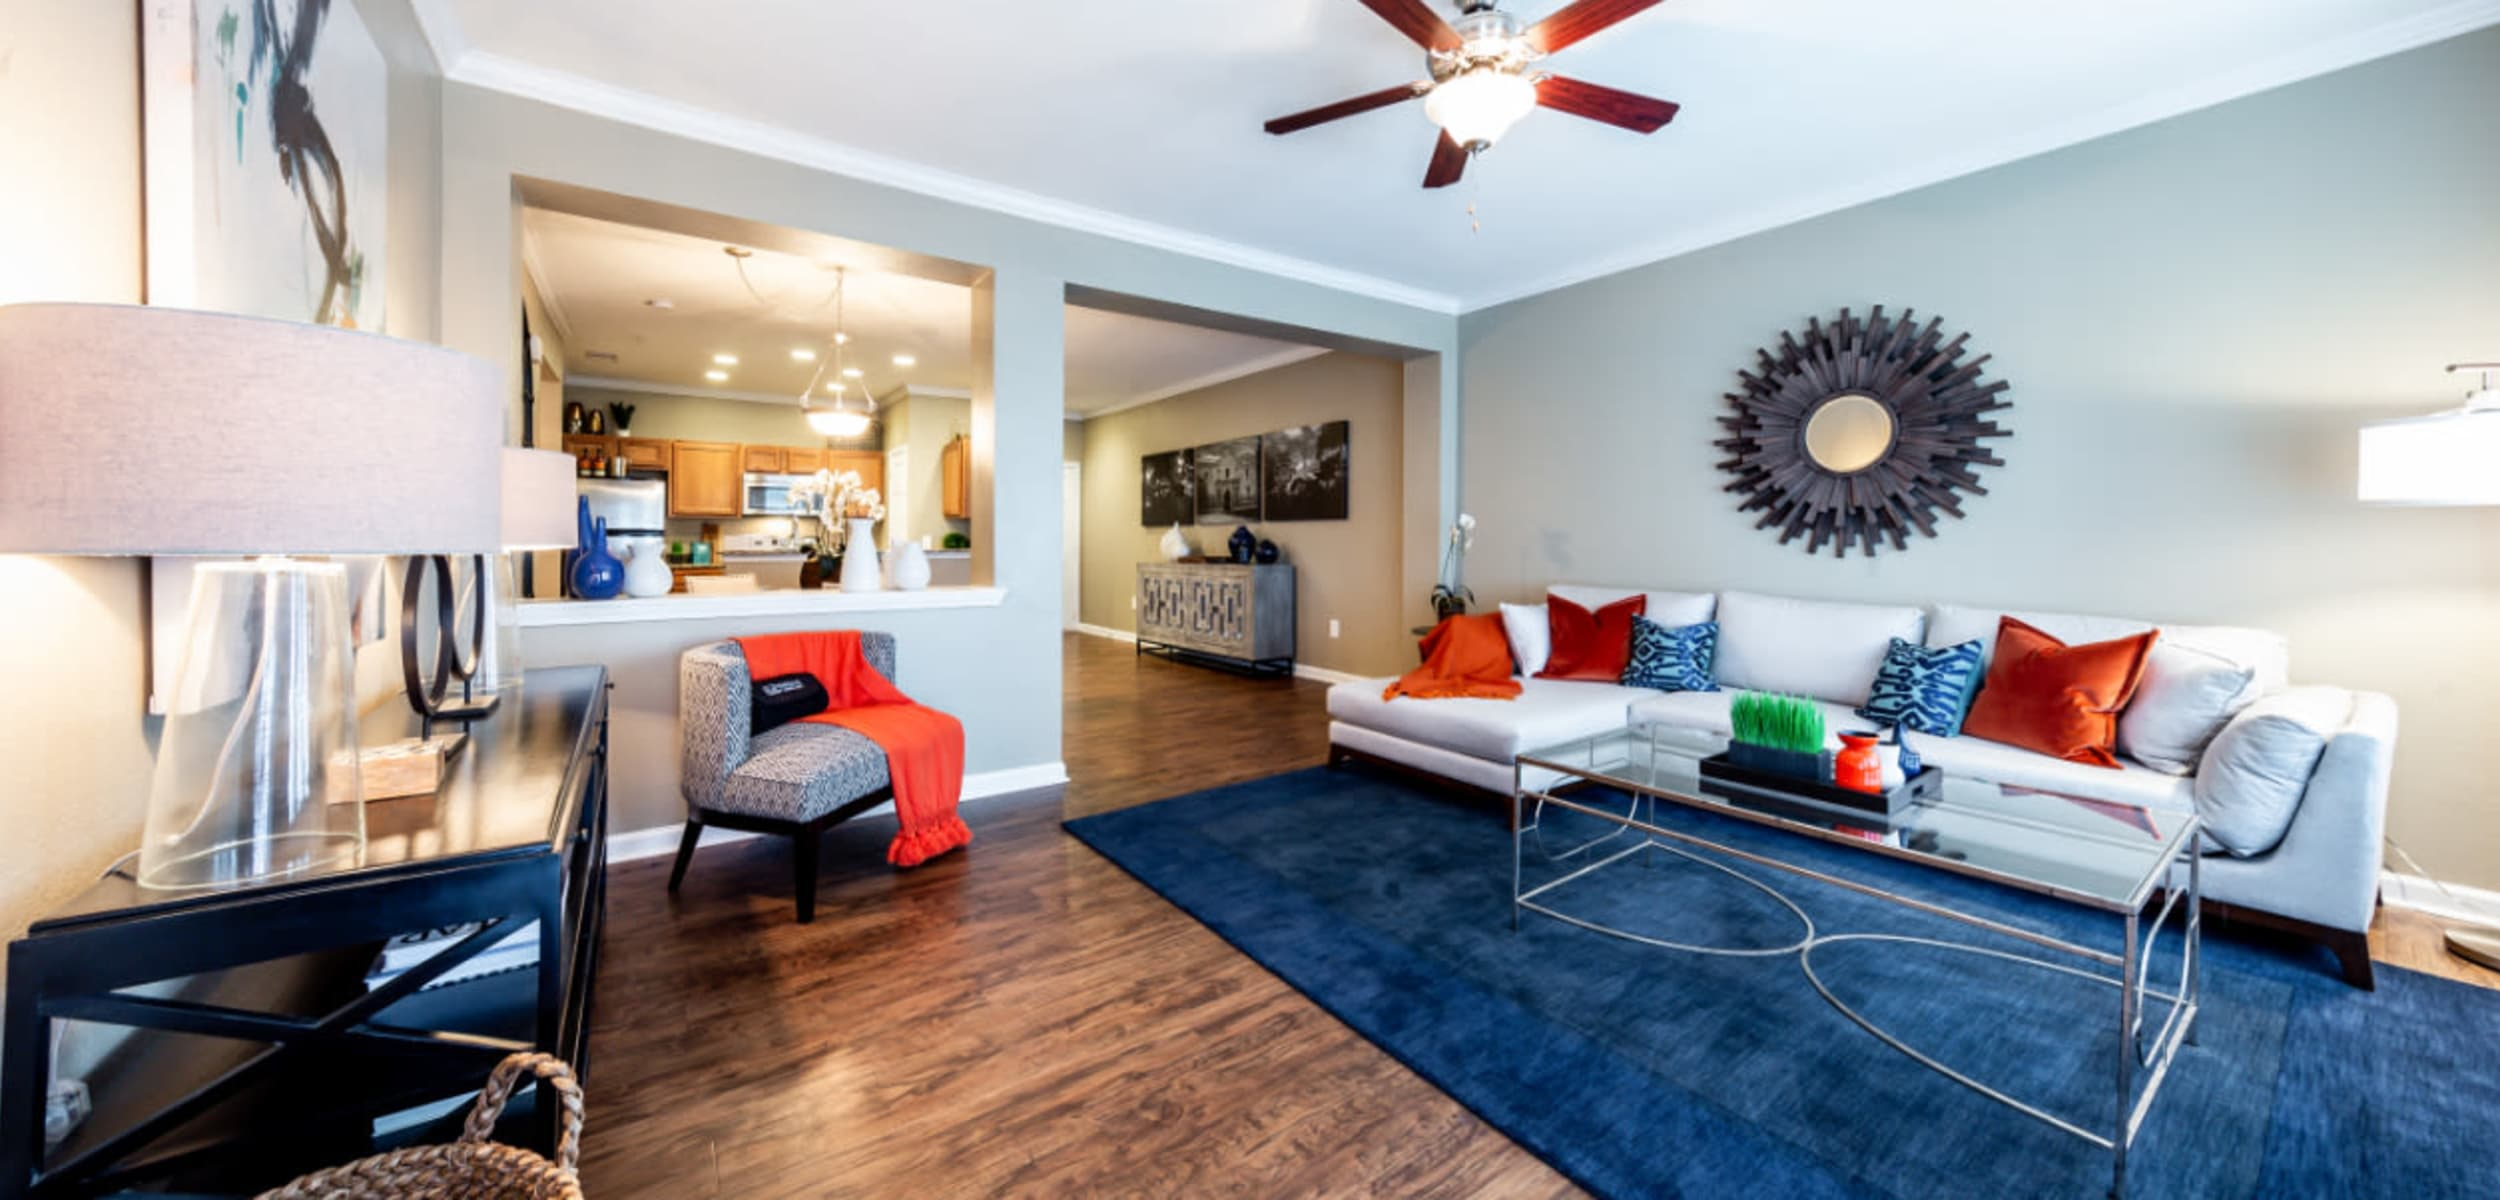 Open and bright living area with wood flooring and ceiling fan at Marquis at Stone Oak in San Antonio, Texas